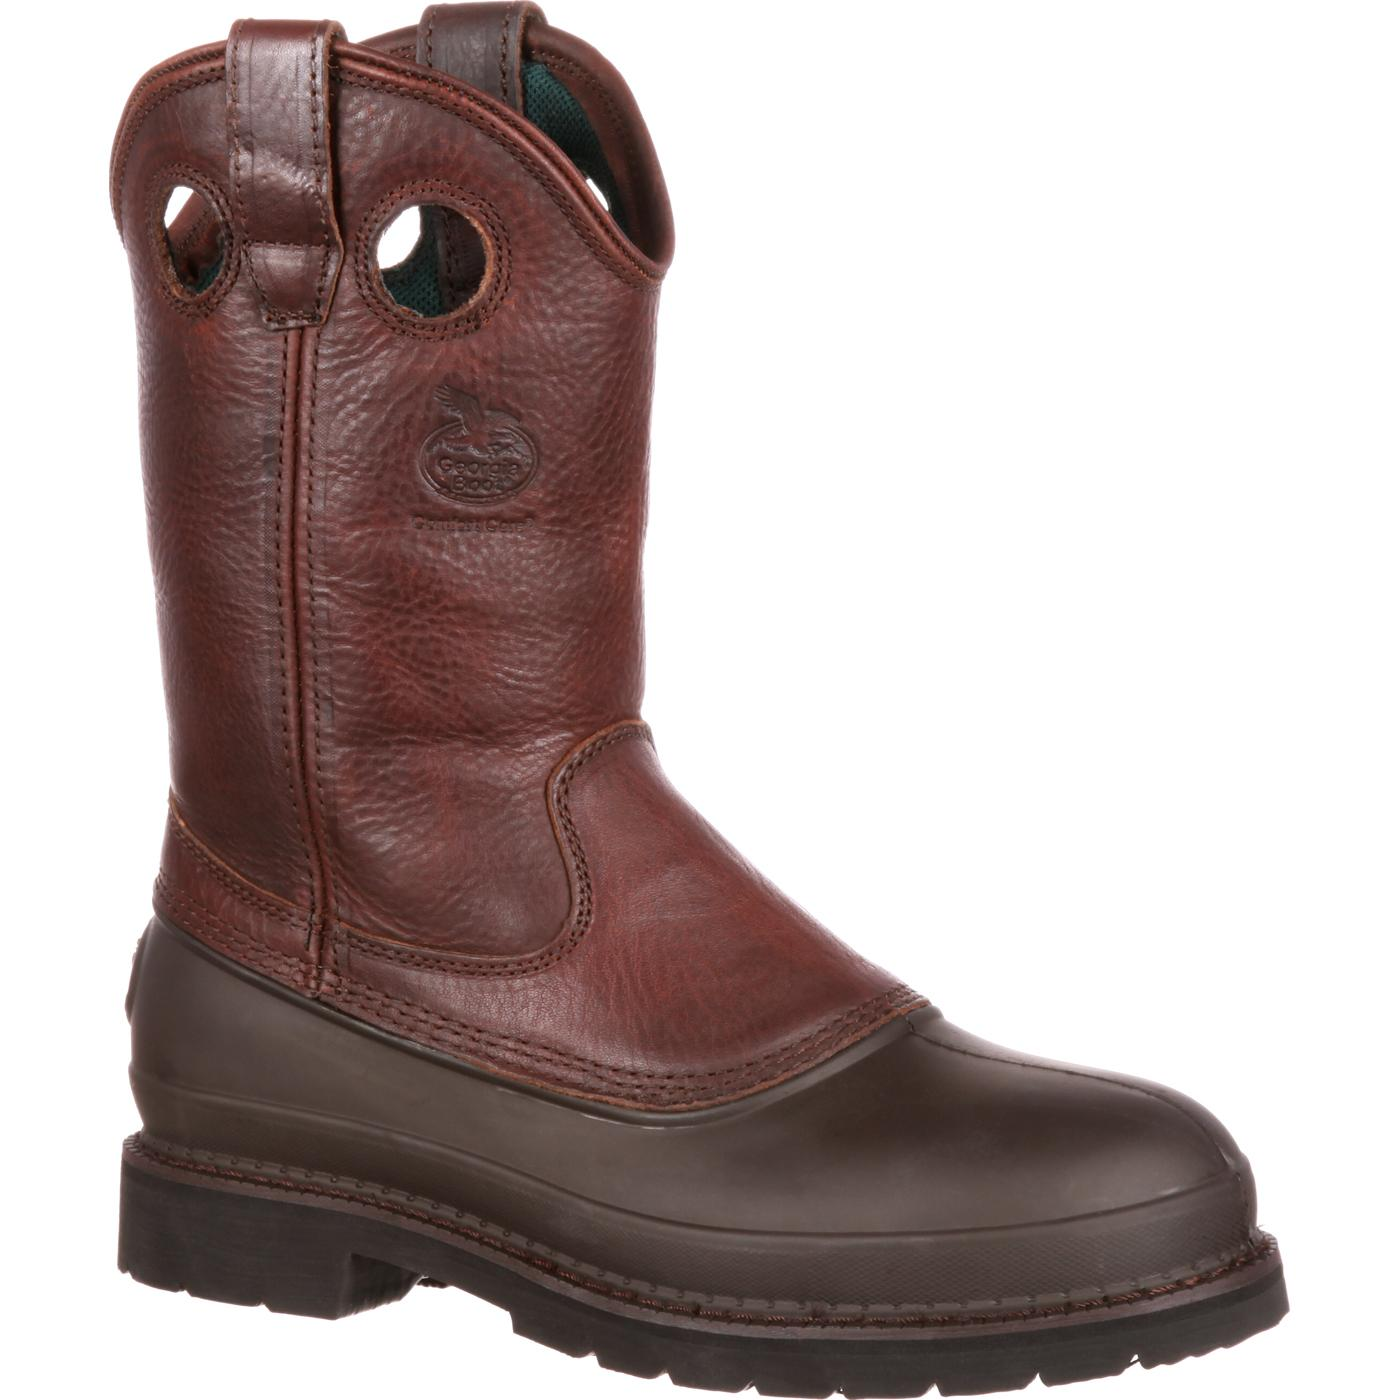 Genuine Georgia Boot G5353 Men W Round Toe Leather Brown Work Boot Mens Brown Georgia Boot Mens Boots